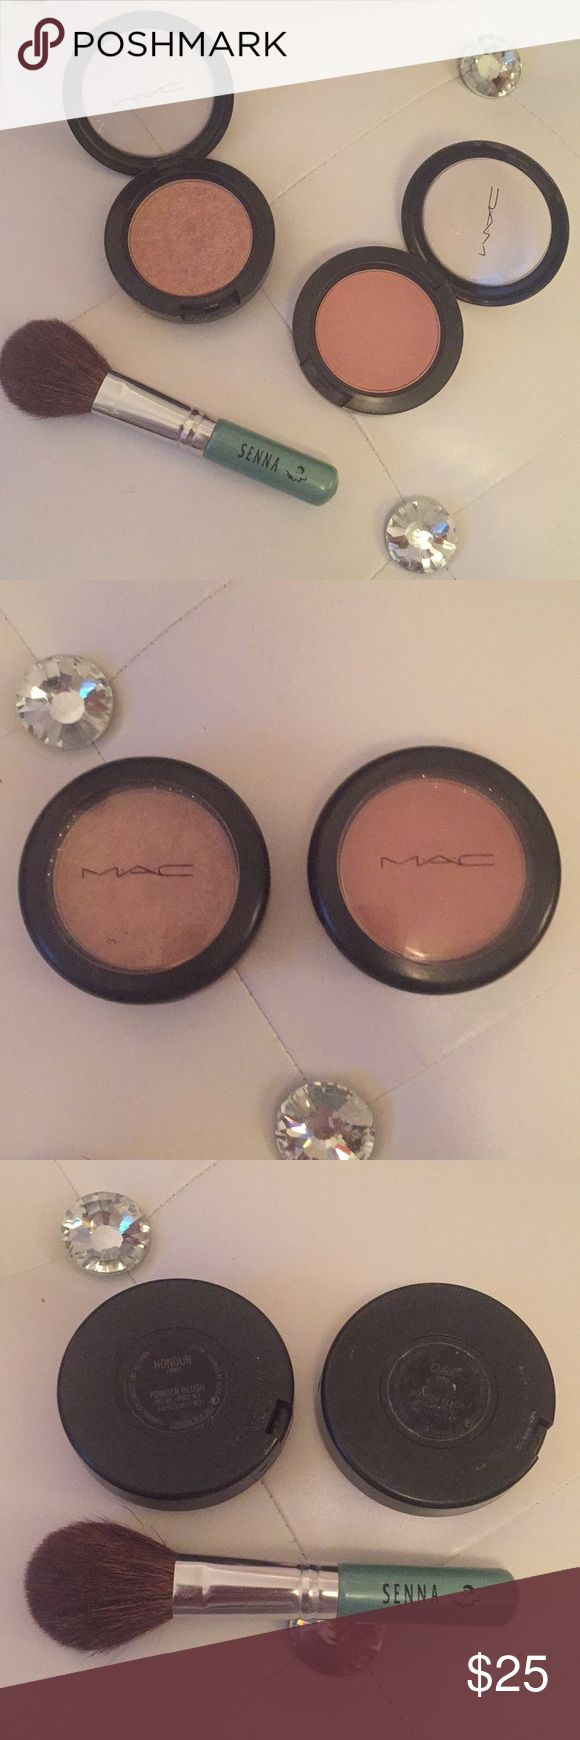 MAC Bronzer & Blush Bundle + BONUS BRUSH FREE! Bundle includes one full size MAC blush in Cubic which is a dusty rose color and one full size MAC bronzer in Honour, both with lots of product left because they were only used a few times and completely sanitized. As a bonus this bundle includes a FREE Senna travel size blush or bronzer application brush ✨ In addition, I discount all bundles of two or more separate listings automatically by 20%. Offers welcome! MAC Cosmetics Makeup Blush